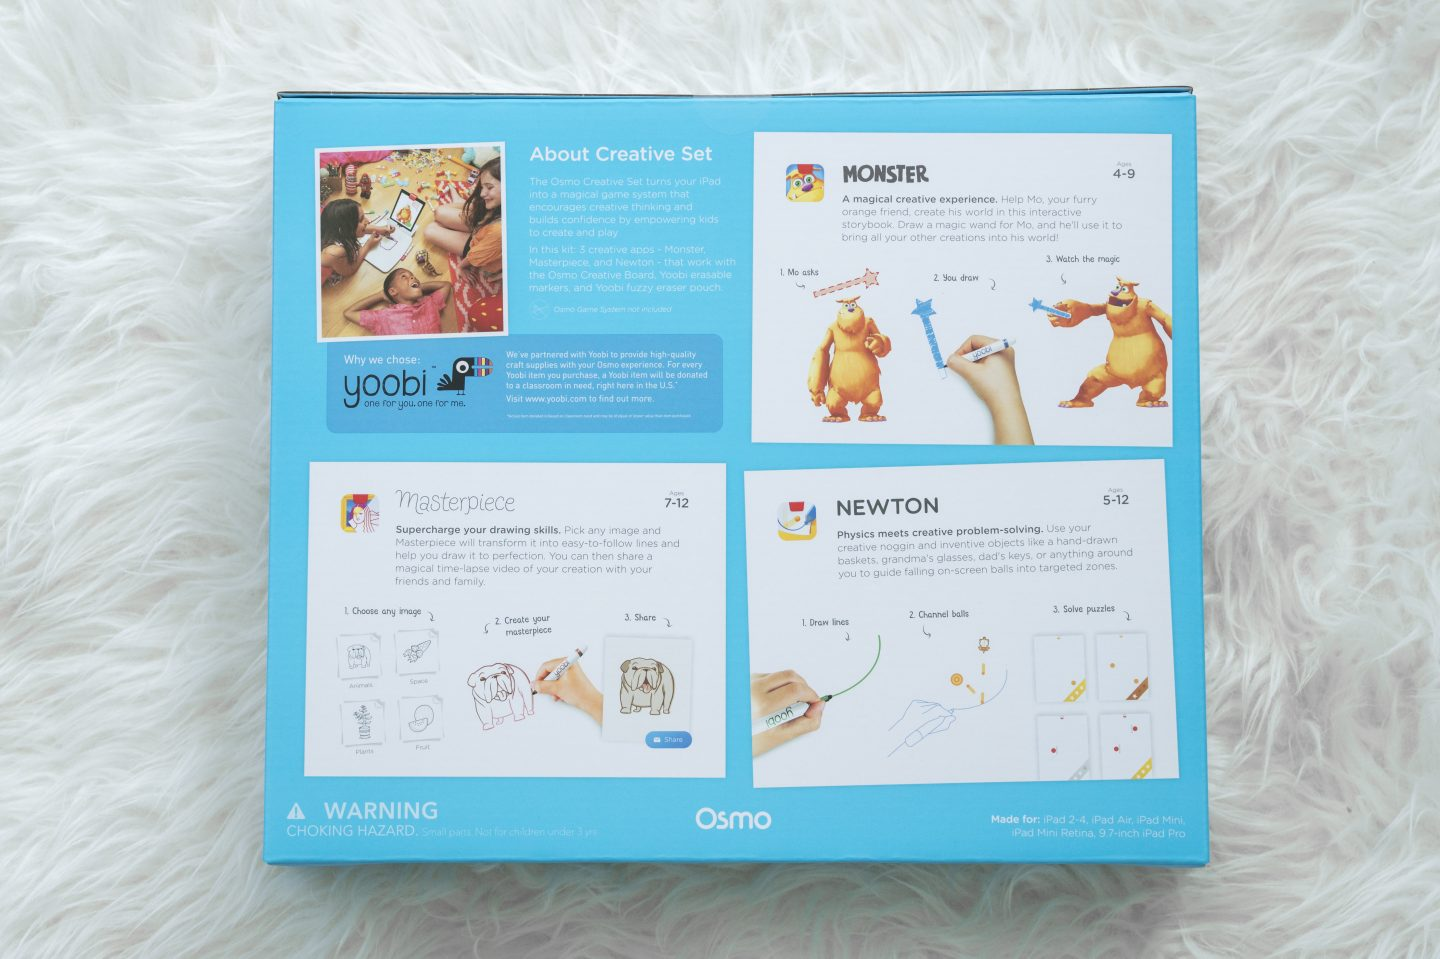 playosmo creative kit